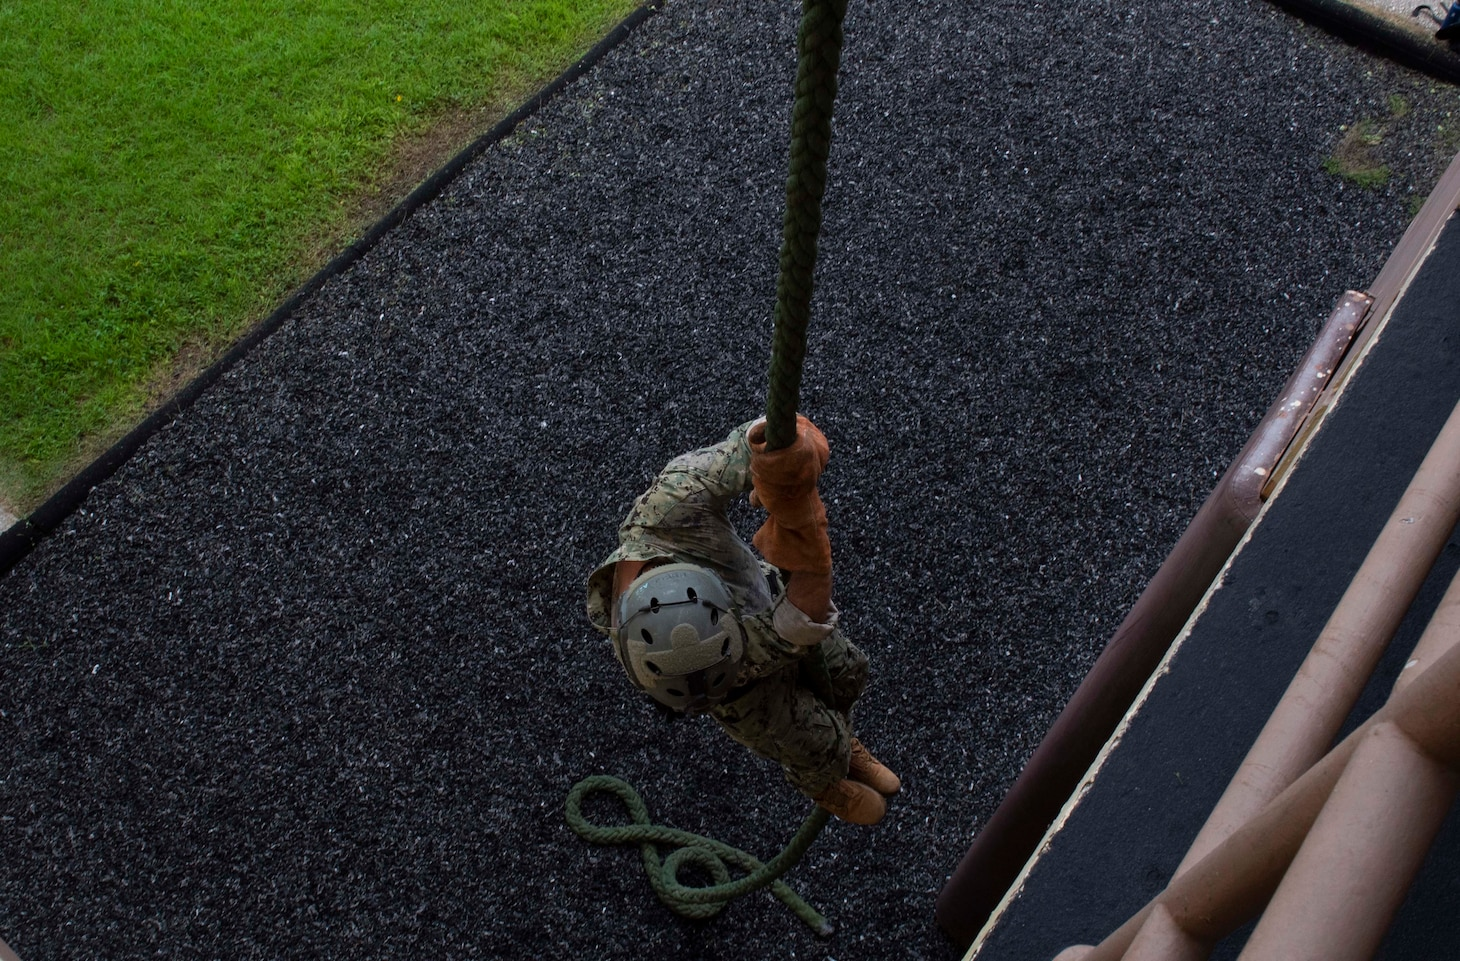 A U.S. Naval Special Warfare operator practices fast-rope techniques with partner nations as part of MALABAR 2021. MALABAR 2021 is an example of the enduring partnership between Australian, Indian, Japanese and American maritime forces, who routinely operate together in the Indo-Pacific, fostering a cooperative approach toward regional security and stability. Naval Special Warfare is the nation's premiere maritime special operations force and is uniquely positioned to extend the Fleet's reach and deliver all-domain options for naval and joint force commanders.